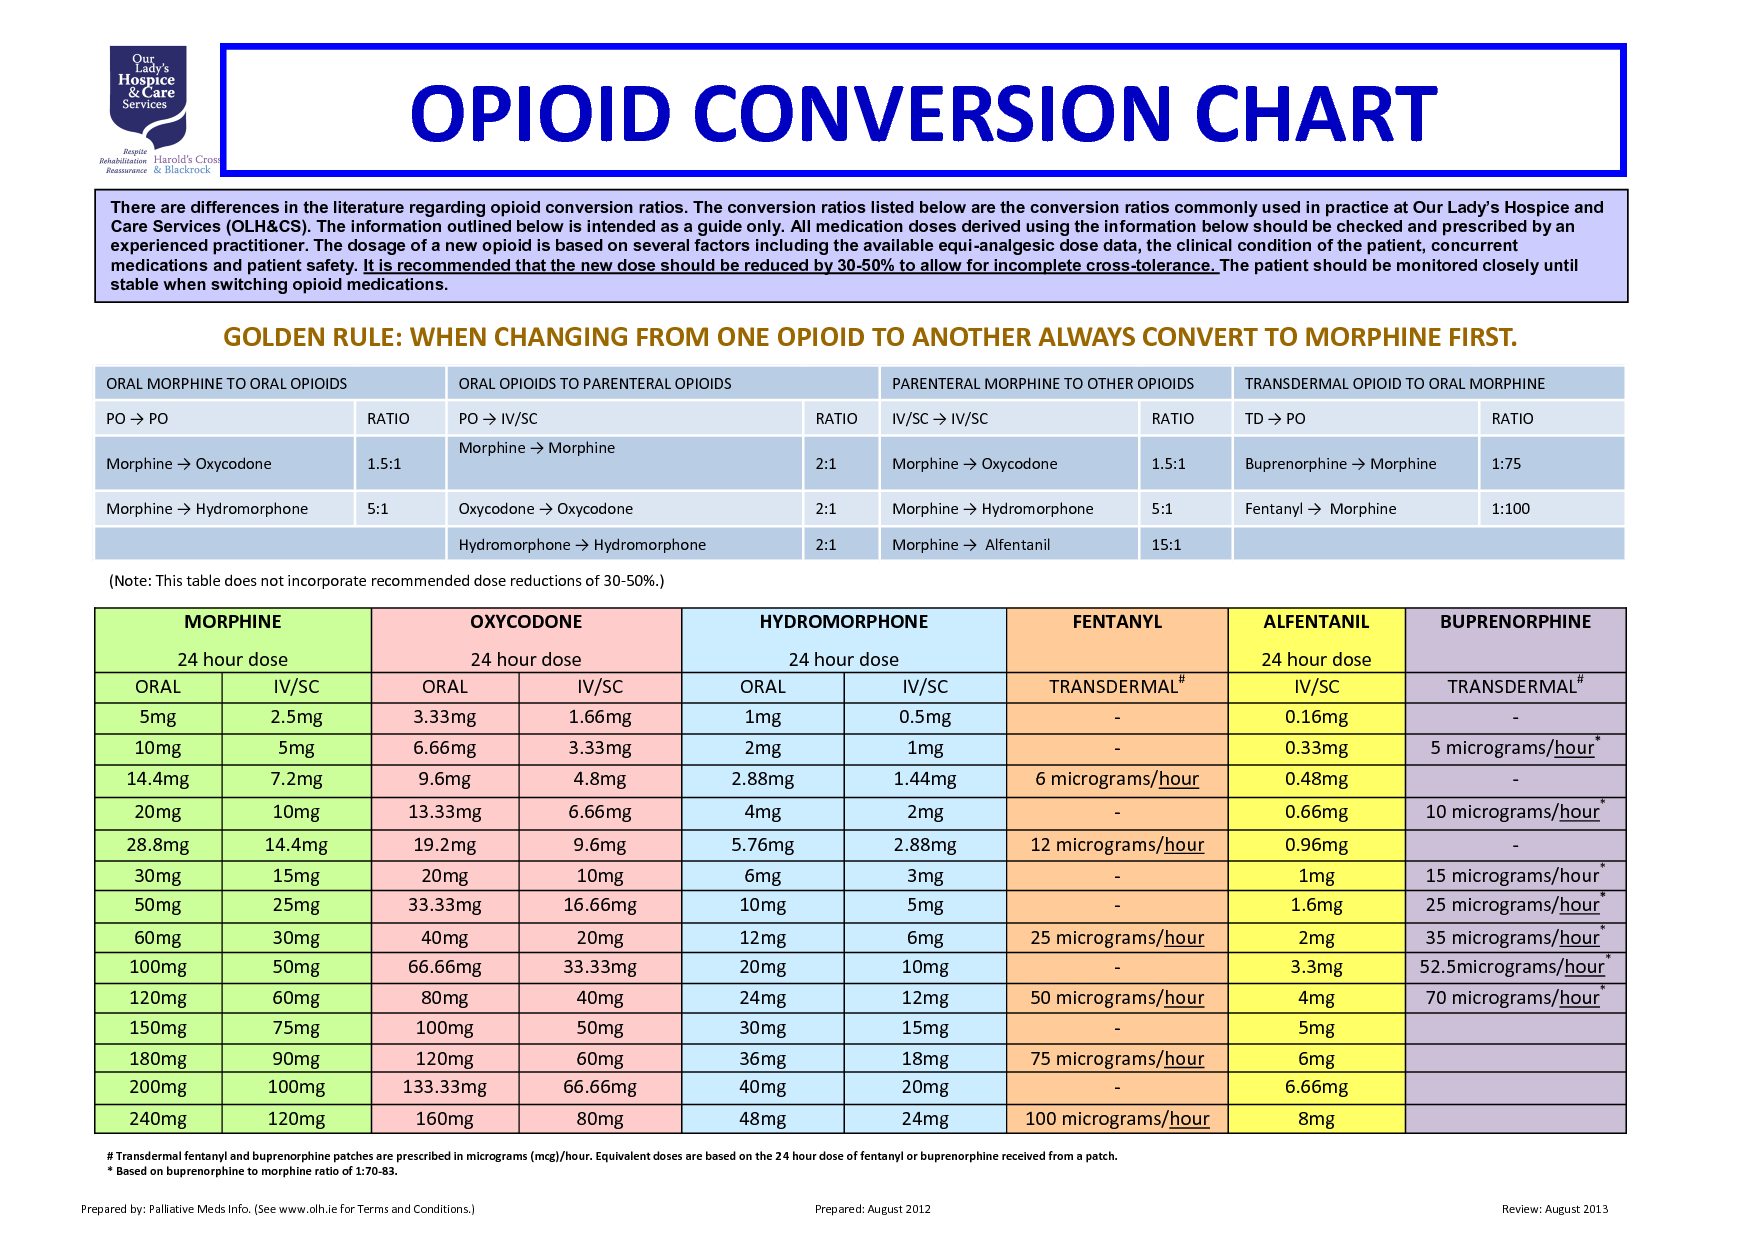 Equianalgesic Opioid Conversion Chart Very complicated